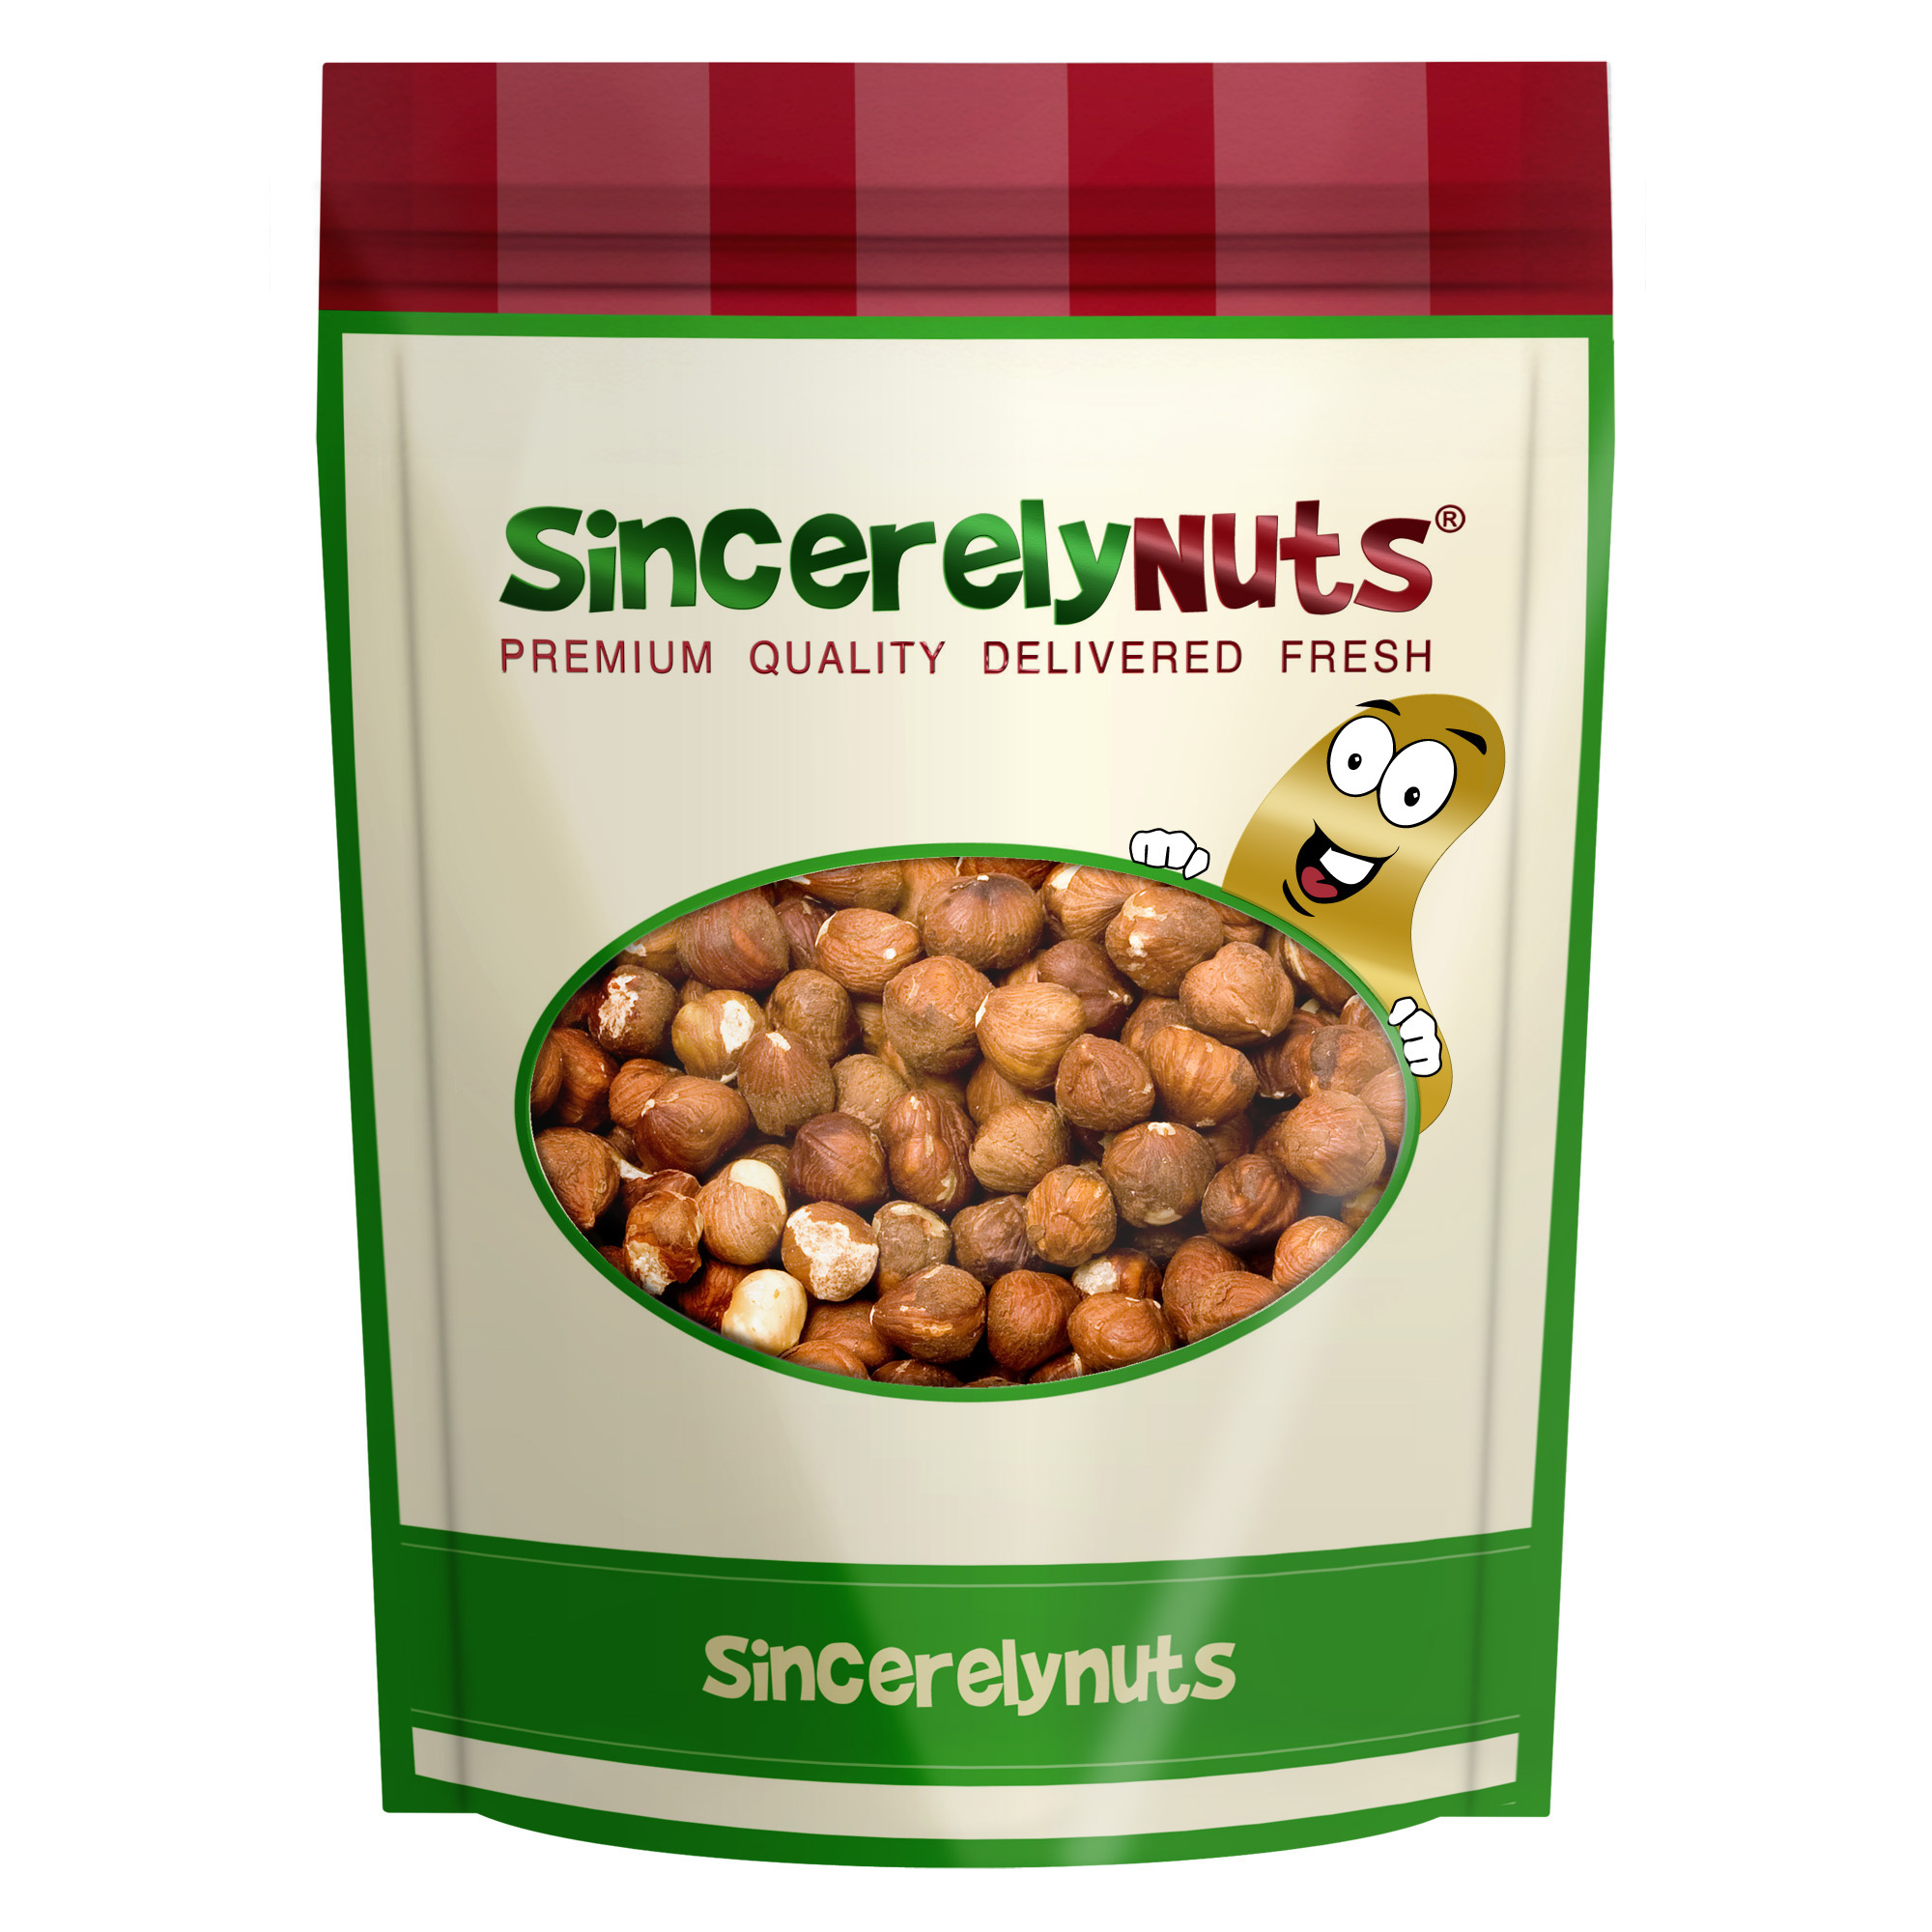 Sincerely Nuts Turkish Hazelnuts, 1.5 LB Bag by Sincerely Nuts